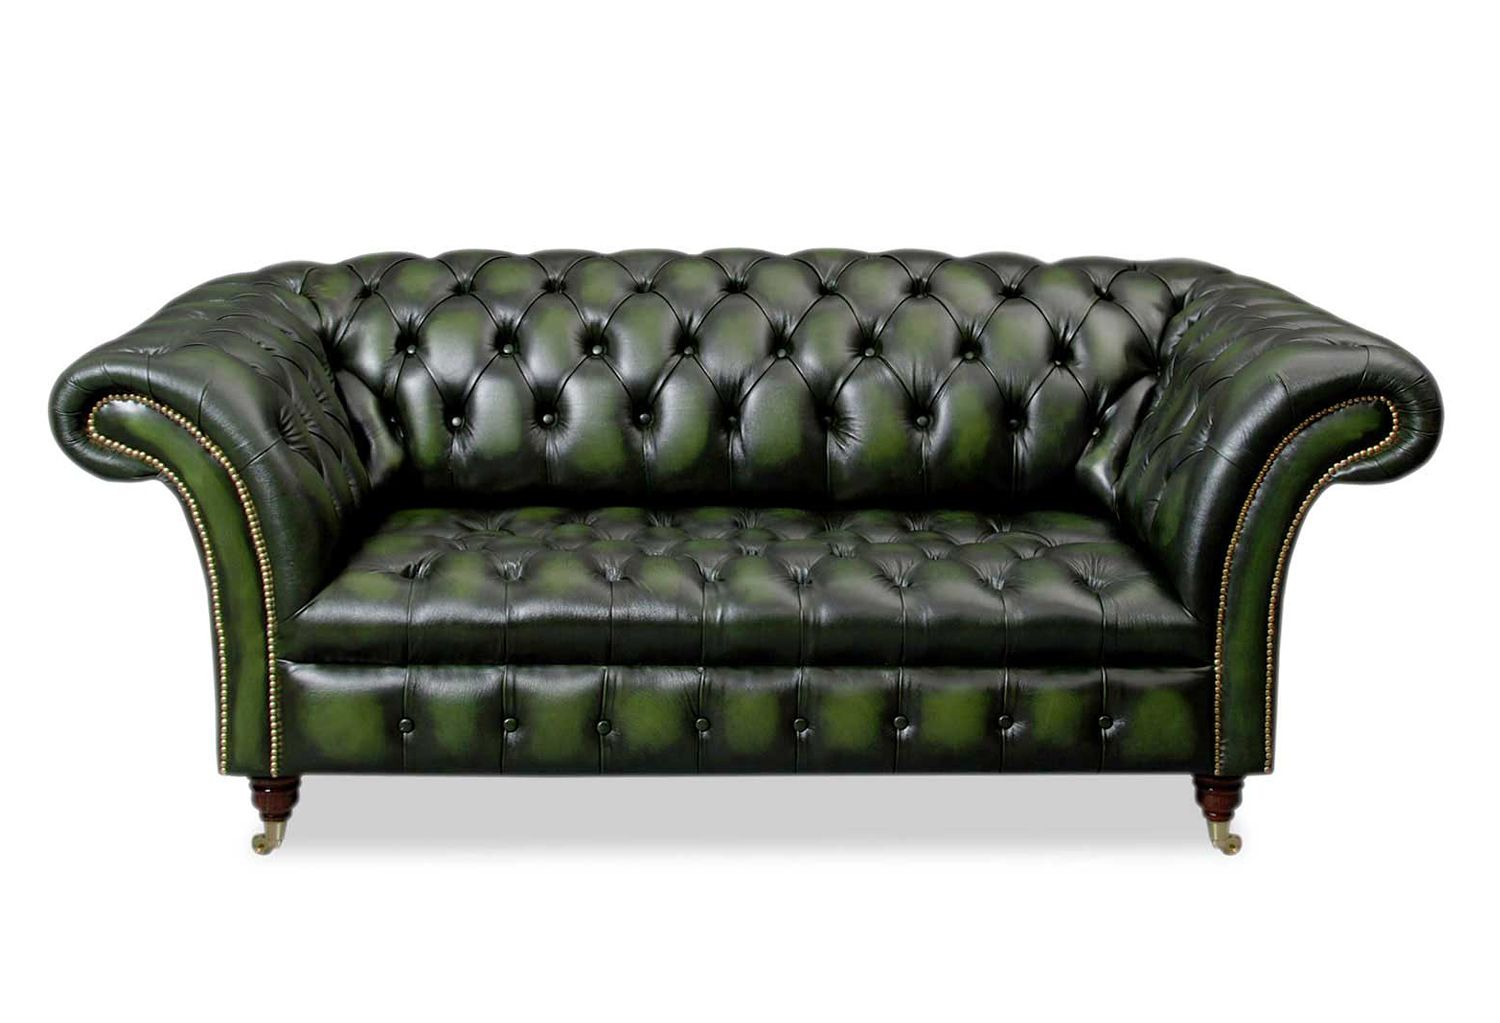 Wilmowsky Sofa Von Wilmowsky Heritage Victorian Chesterfield Sofa Hampstead